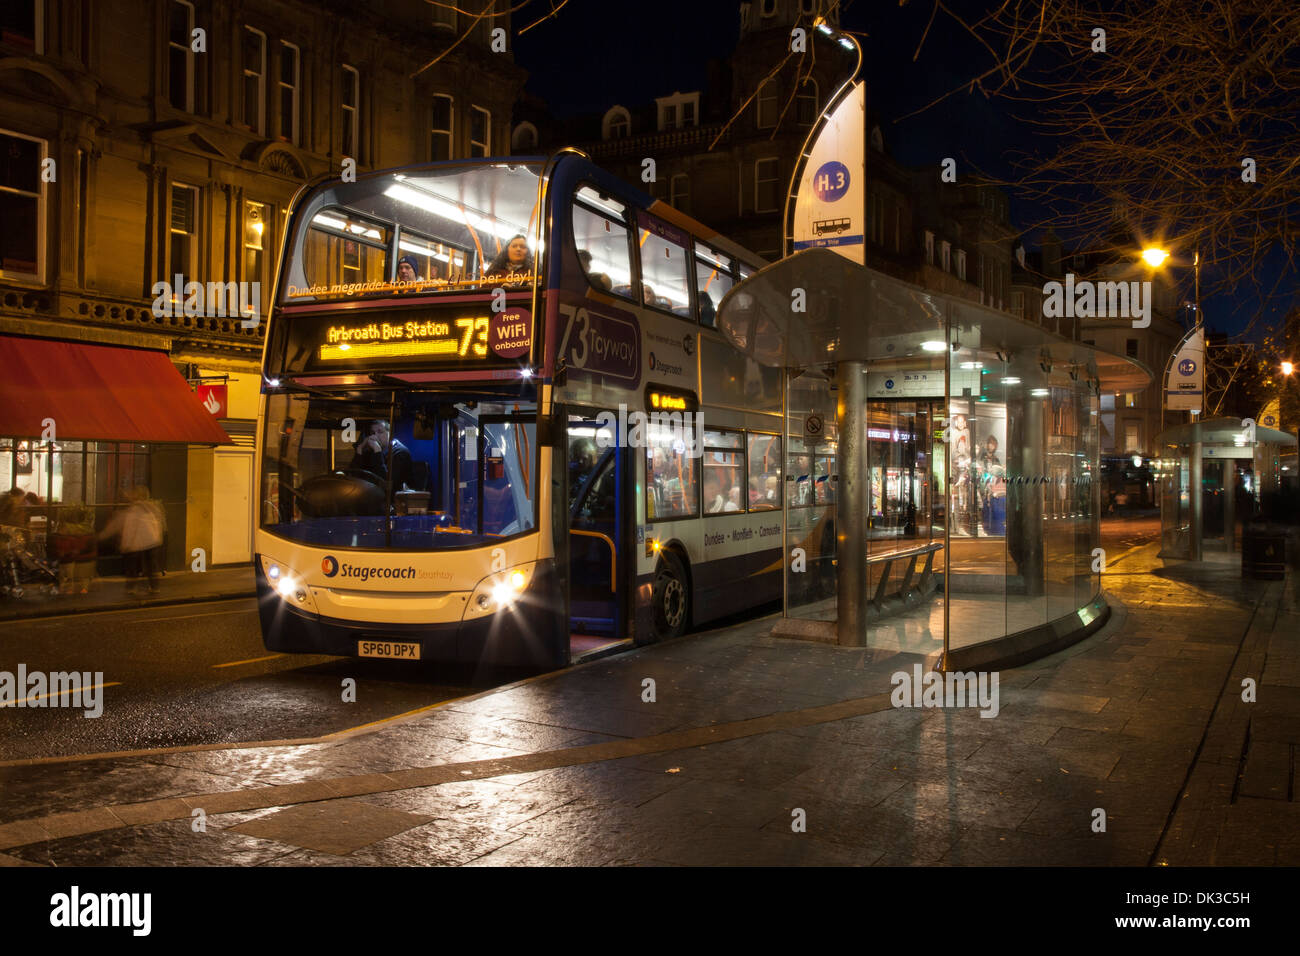 Rainy Night scene, Street lighting & Public Transport in the City of Dundee.  National Express Bus terminus in rain at dusk, Scotland, UK - Stock Image